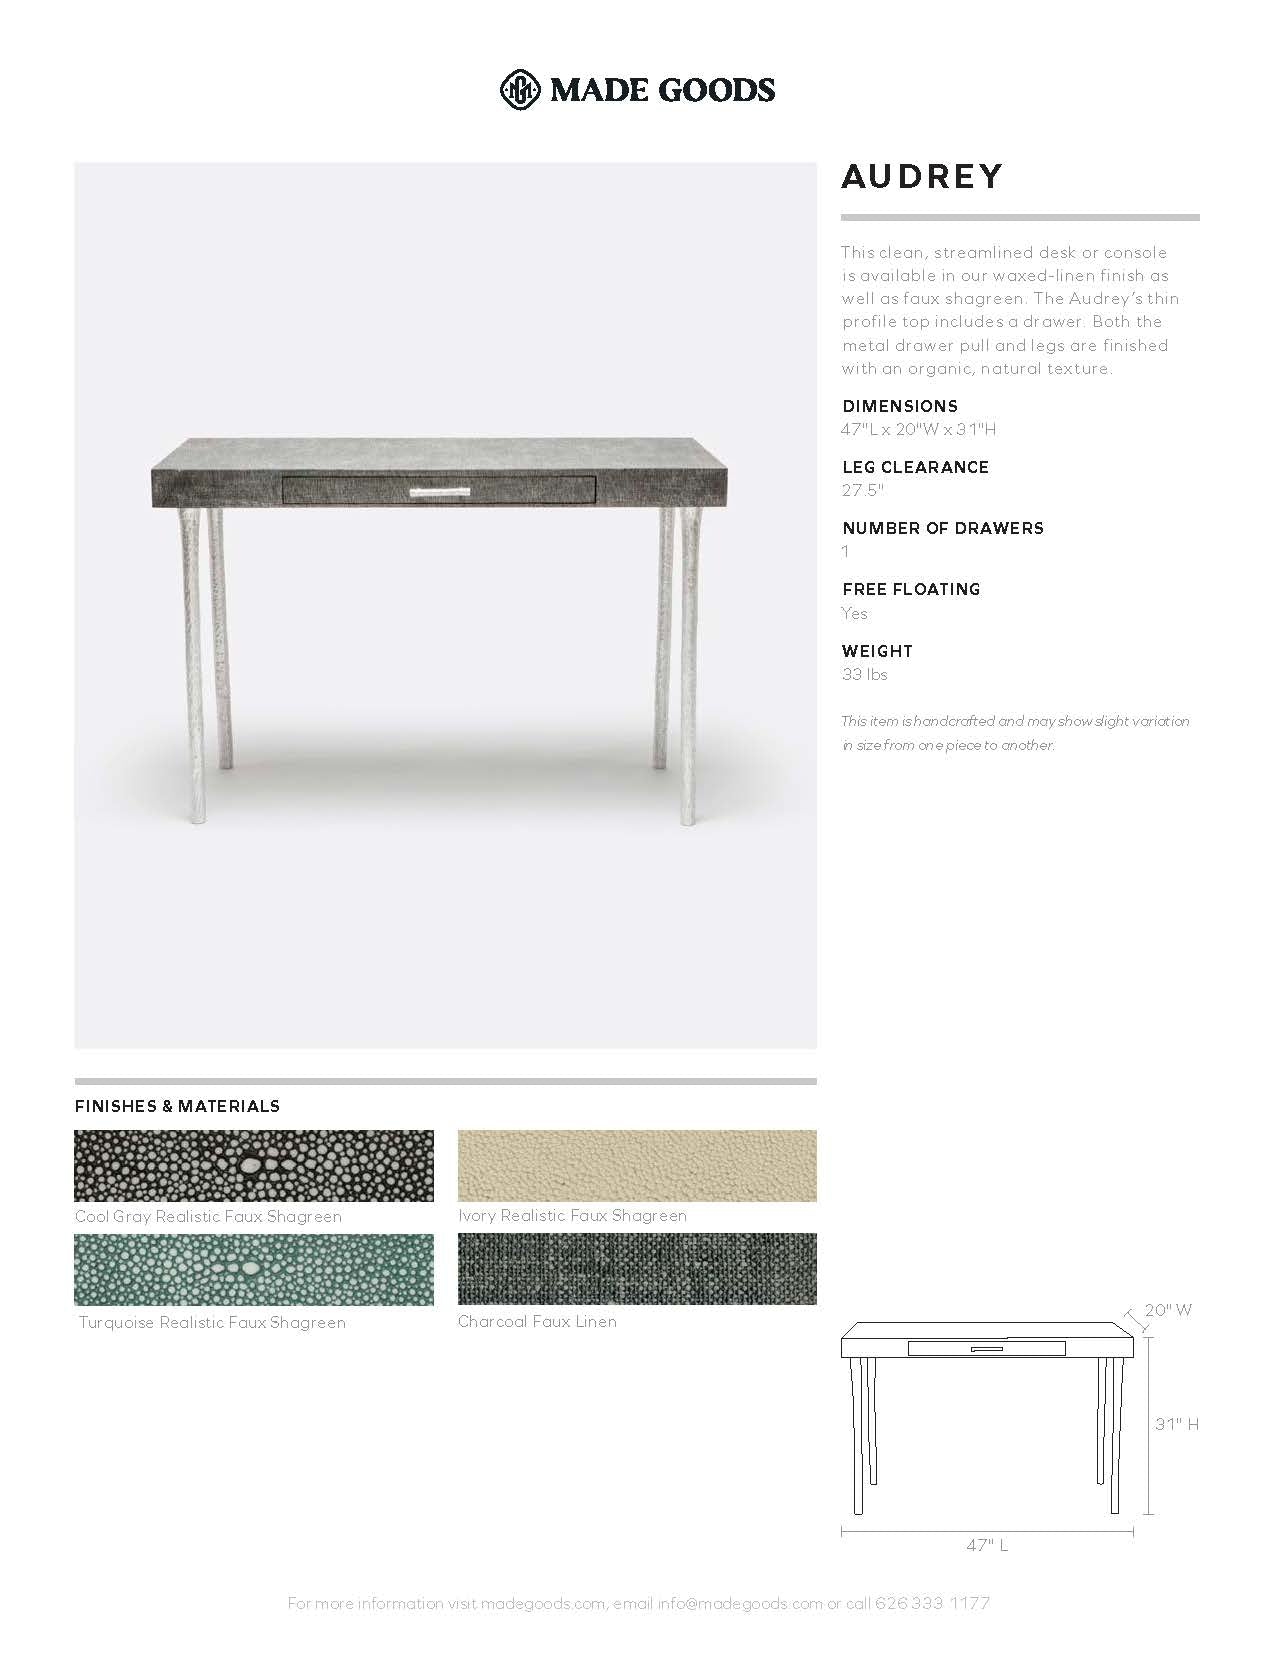 Made Goods Audrey Desk Tearsheet